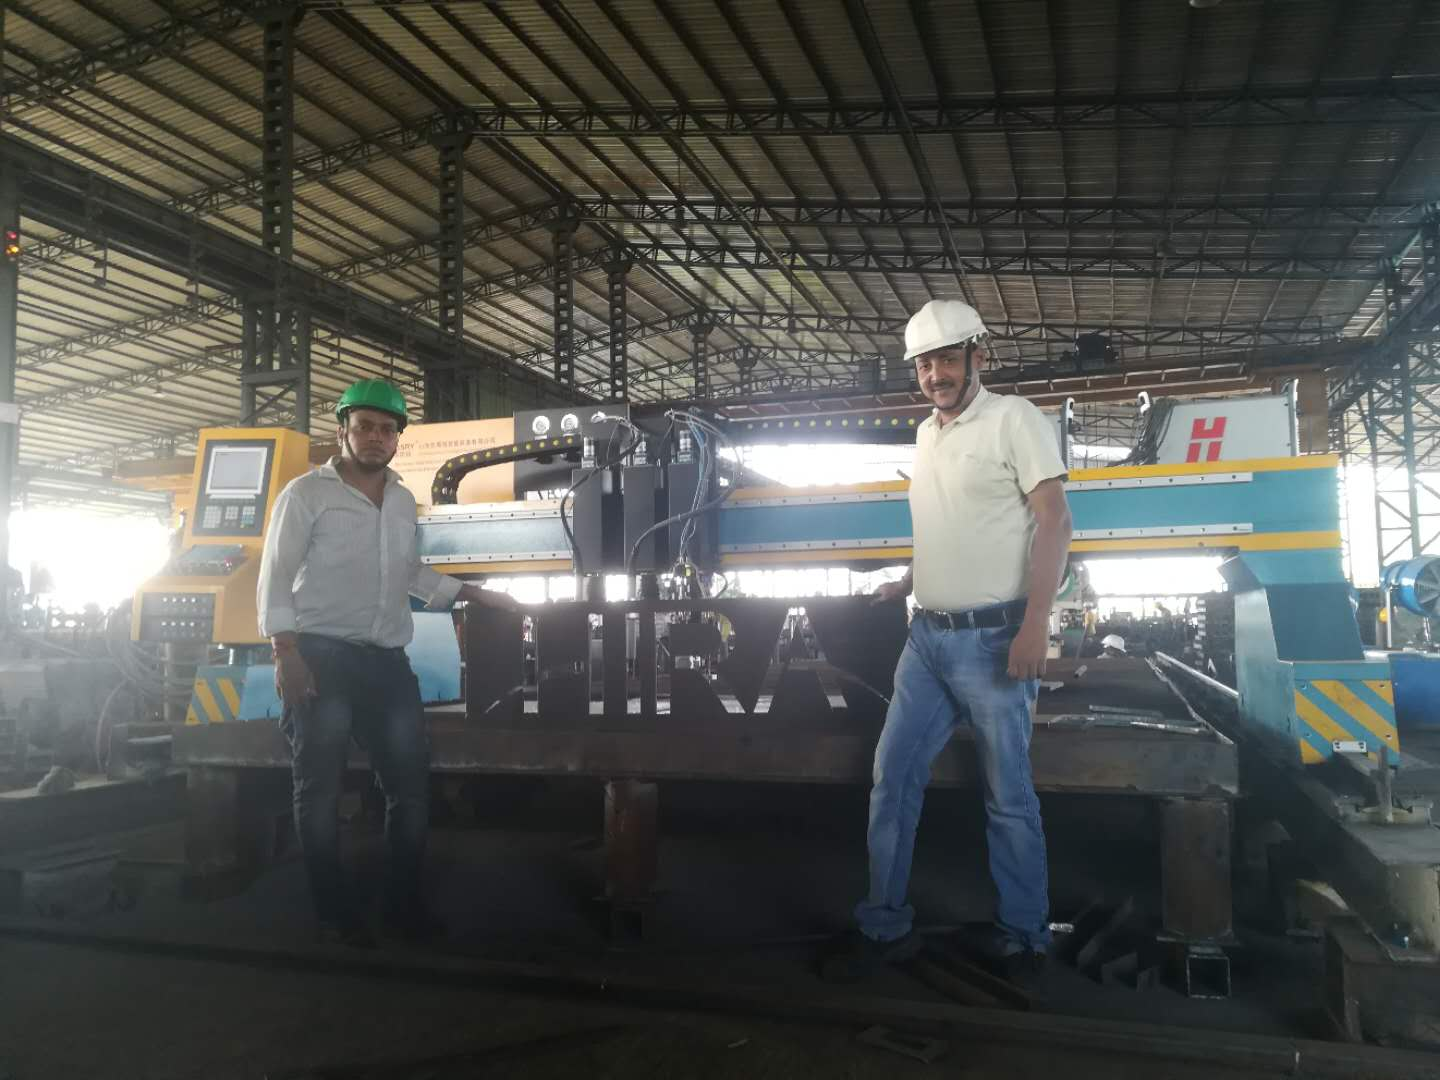 India Heavy Duty Gantry CNC Plasma Flame Cutting Machine For Steel Structure